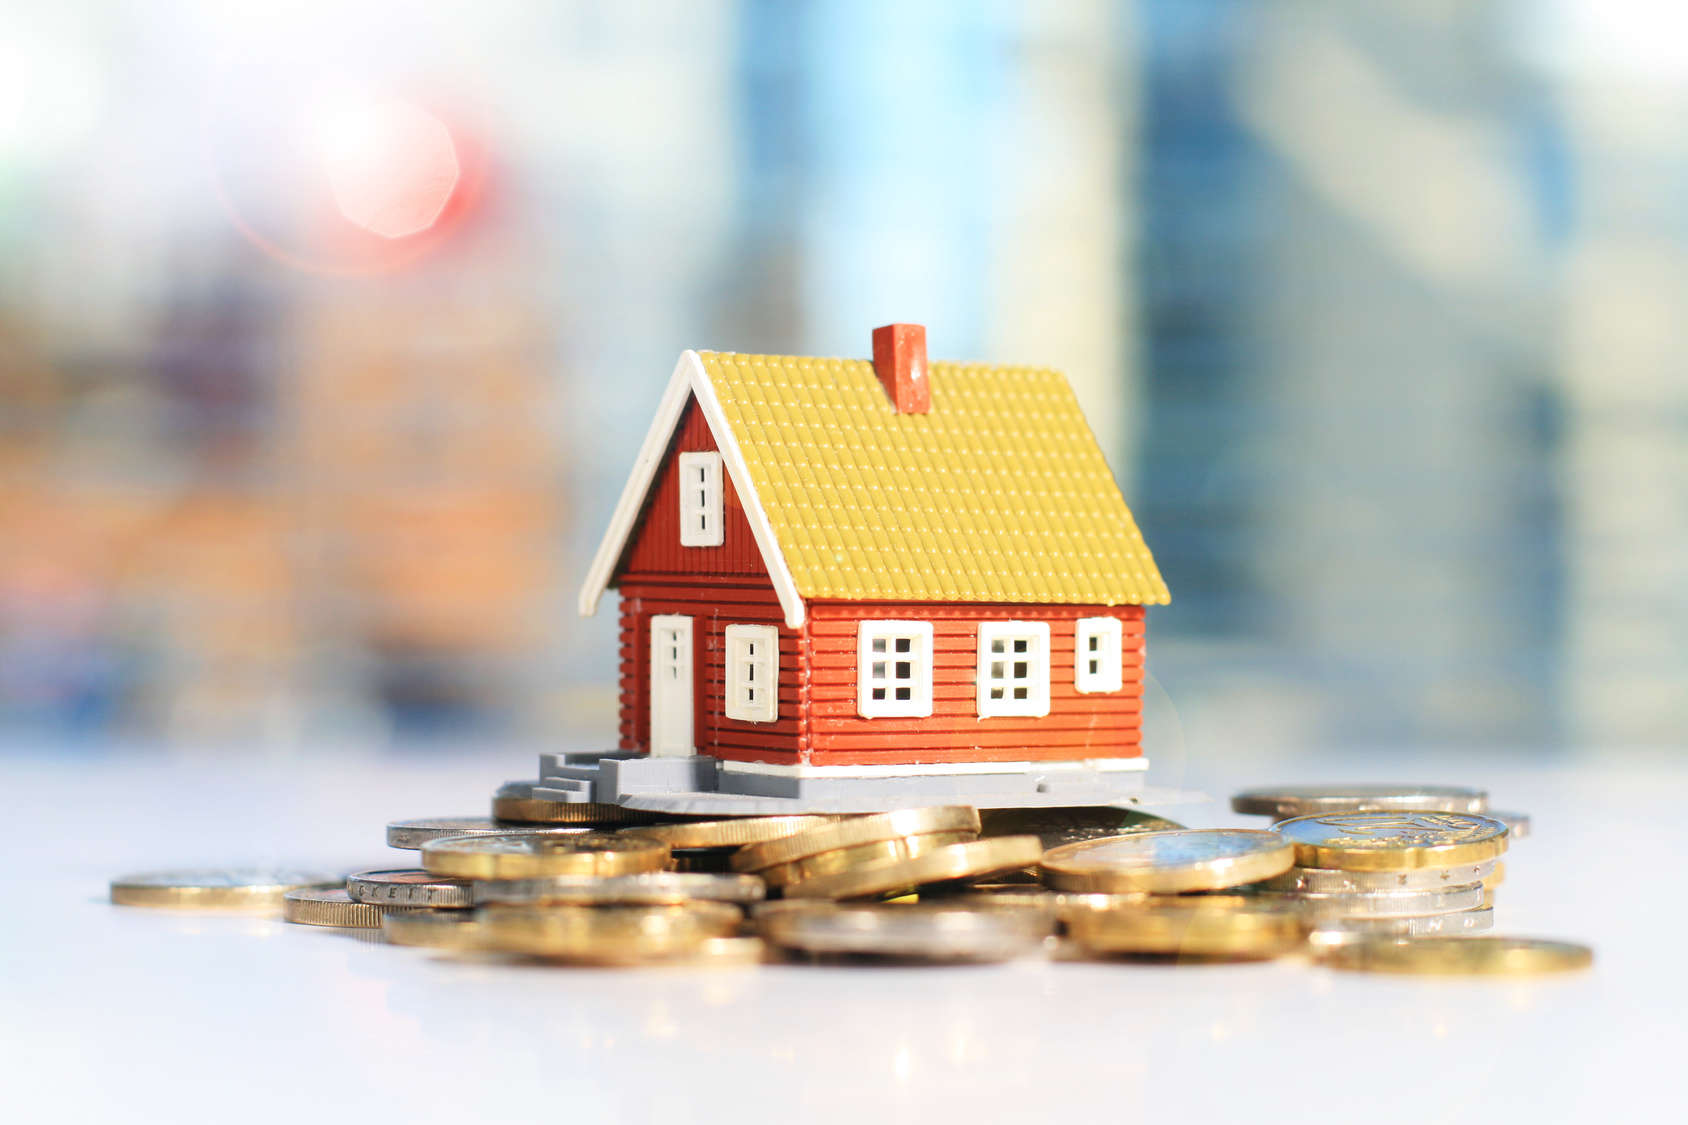 Net annual value of house property investment agricultural investment project